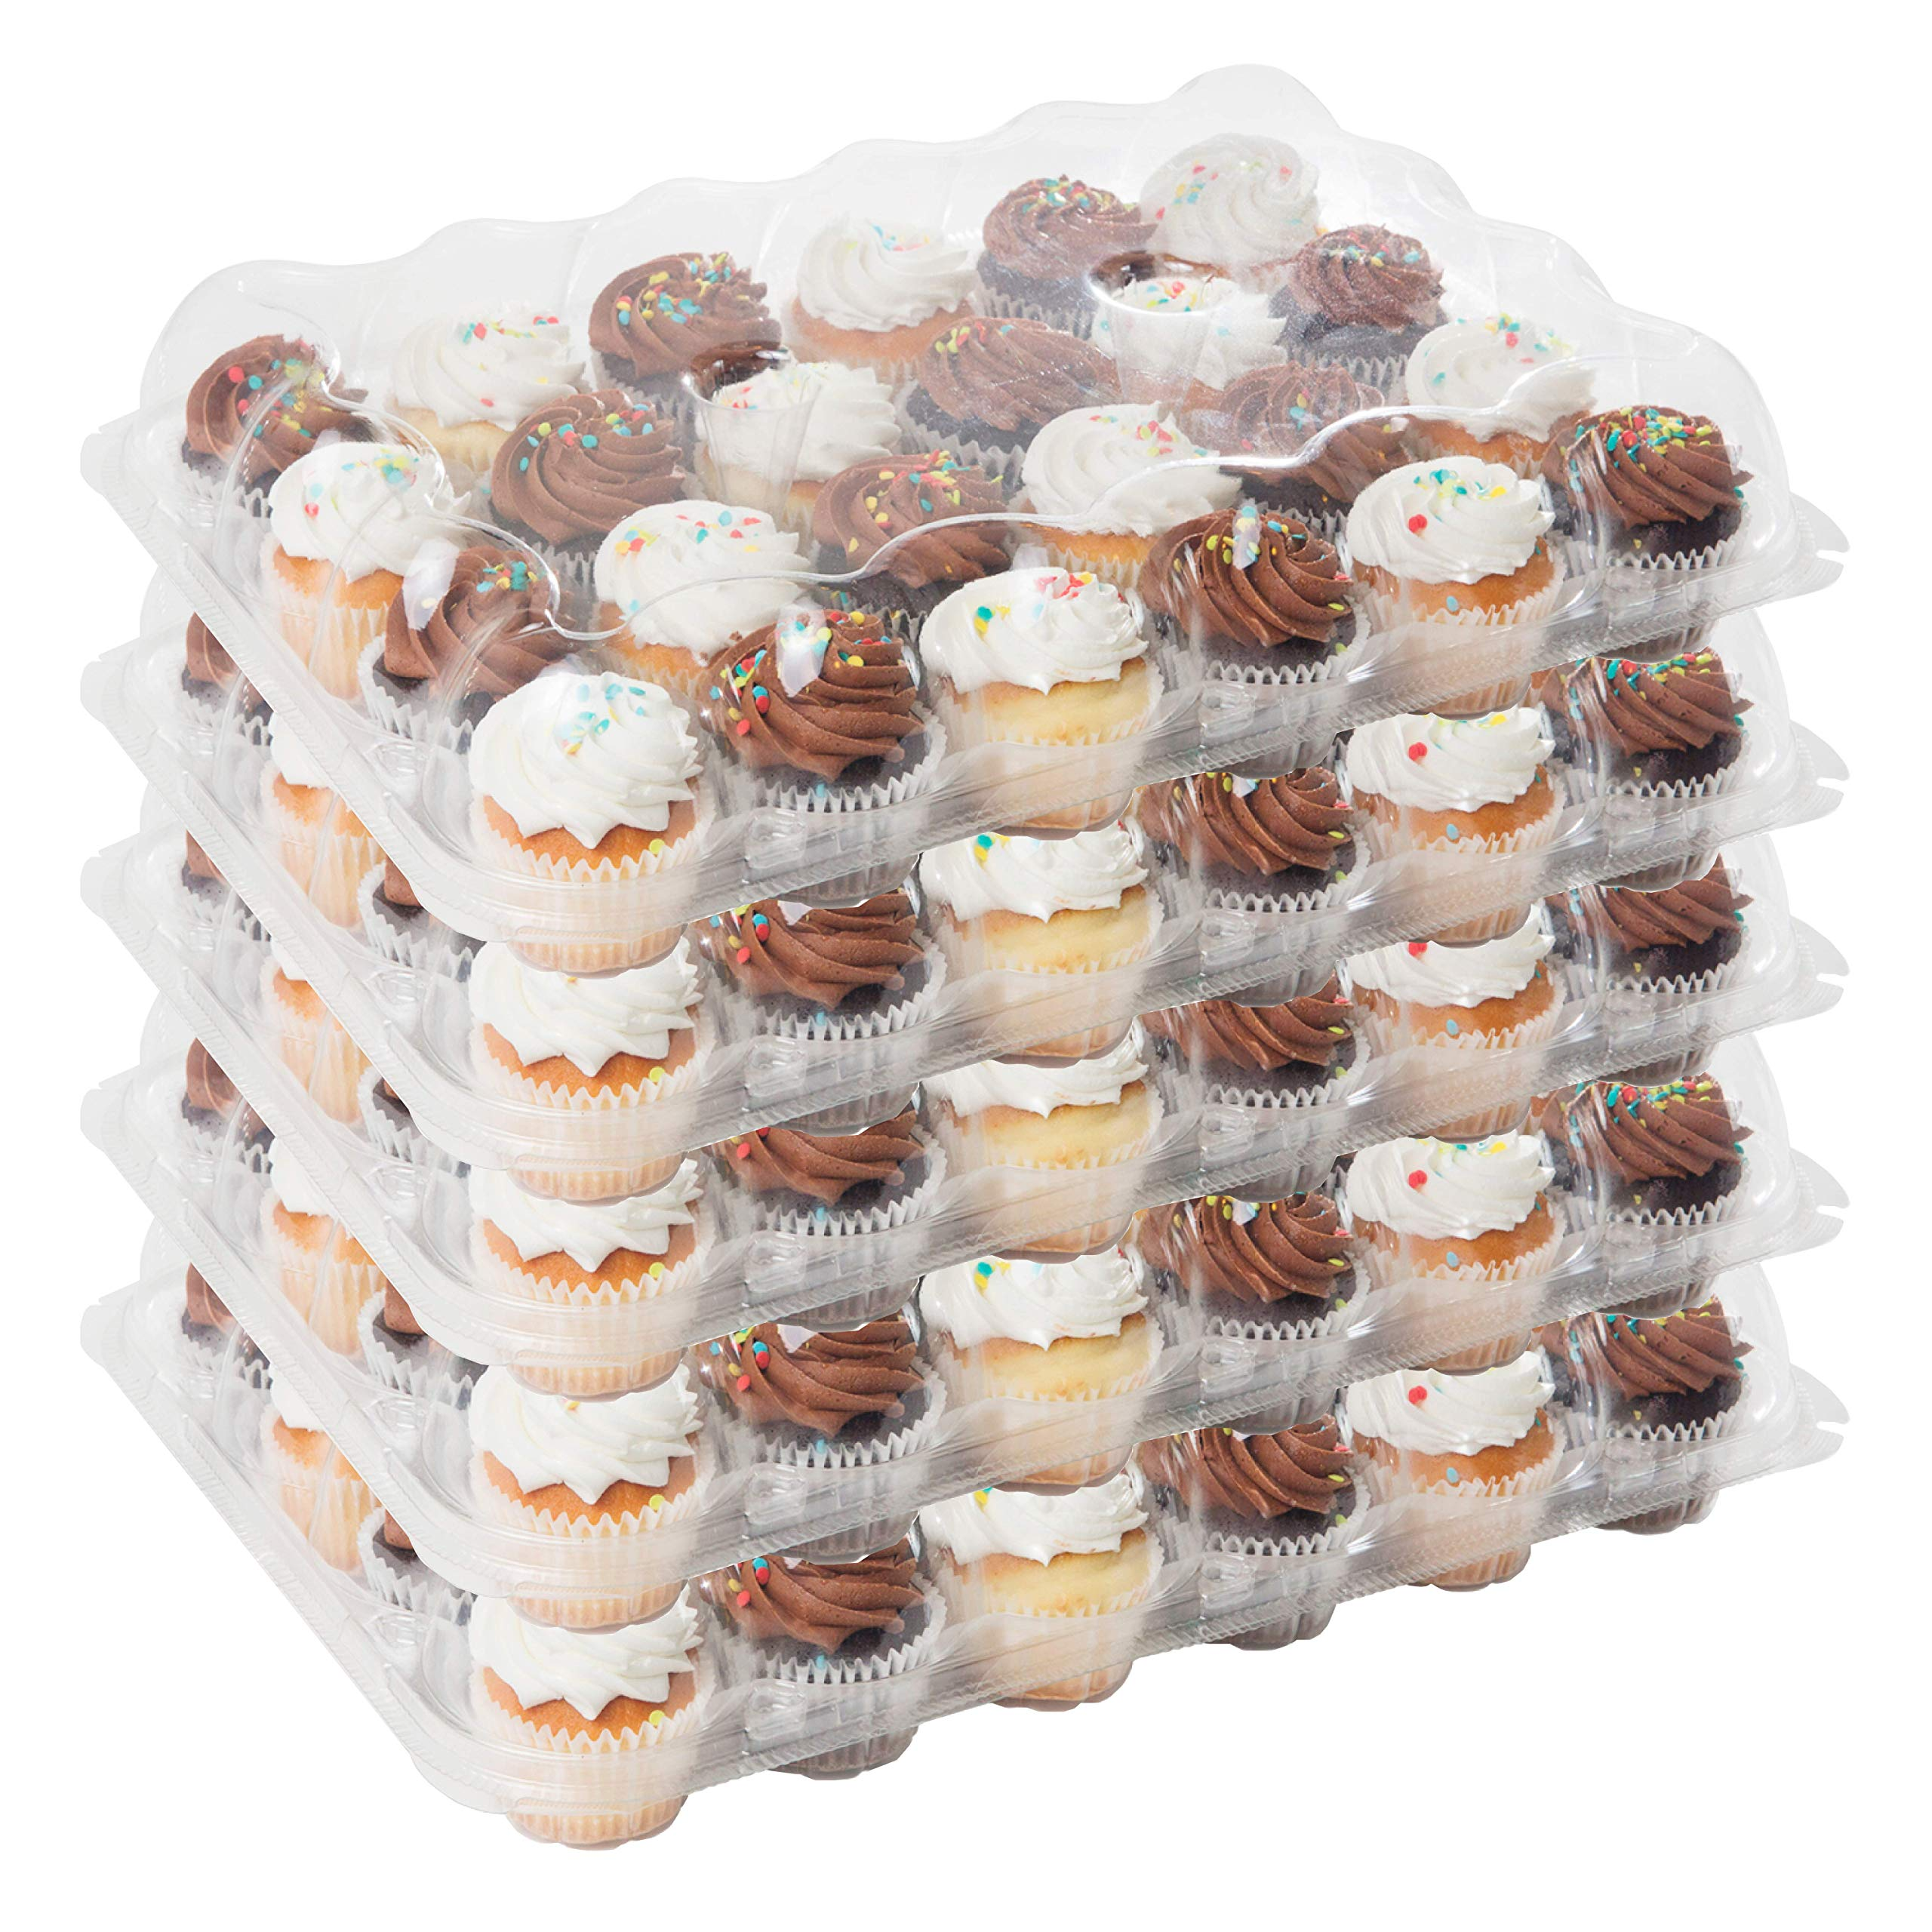 Houseables 24 Cupcake Containers, Plastic Compartment, Clear, 5 Pk, PET, Ultra-Sturdy Boxes, Full Size Cup Cake, Baking Transport, Individual Count, Disposable, Muffin Storage Tray, With 120 Liners by Houseables